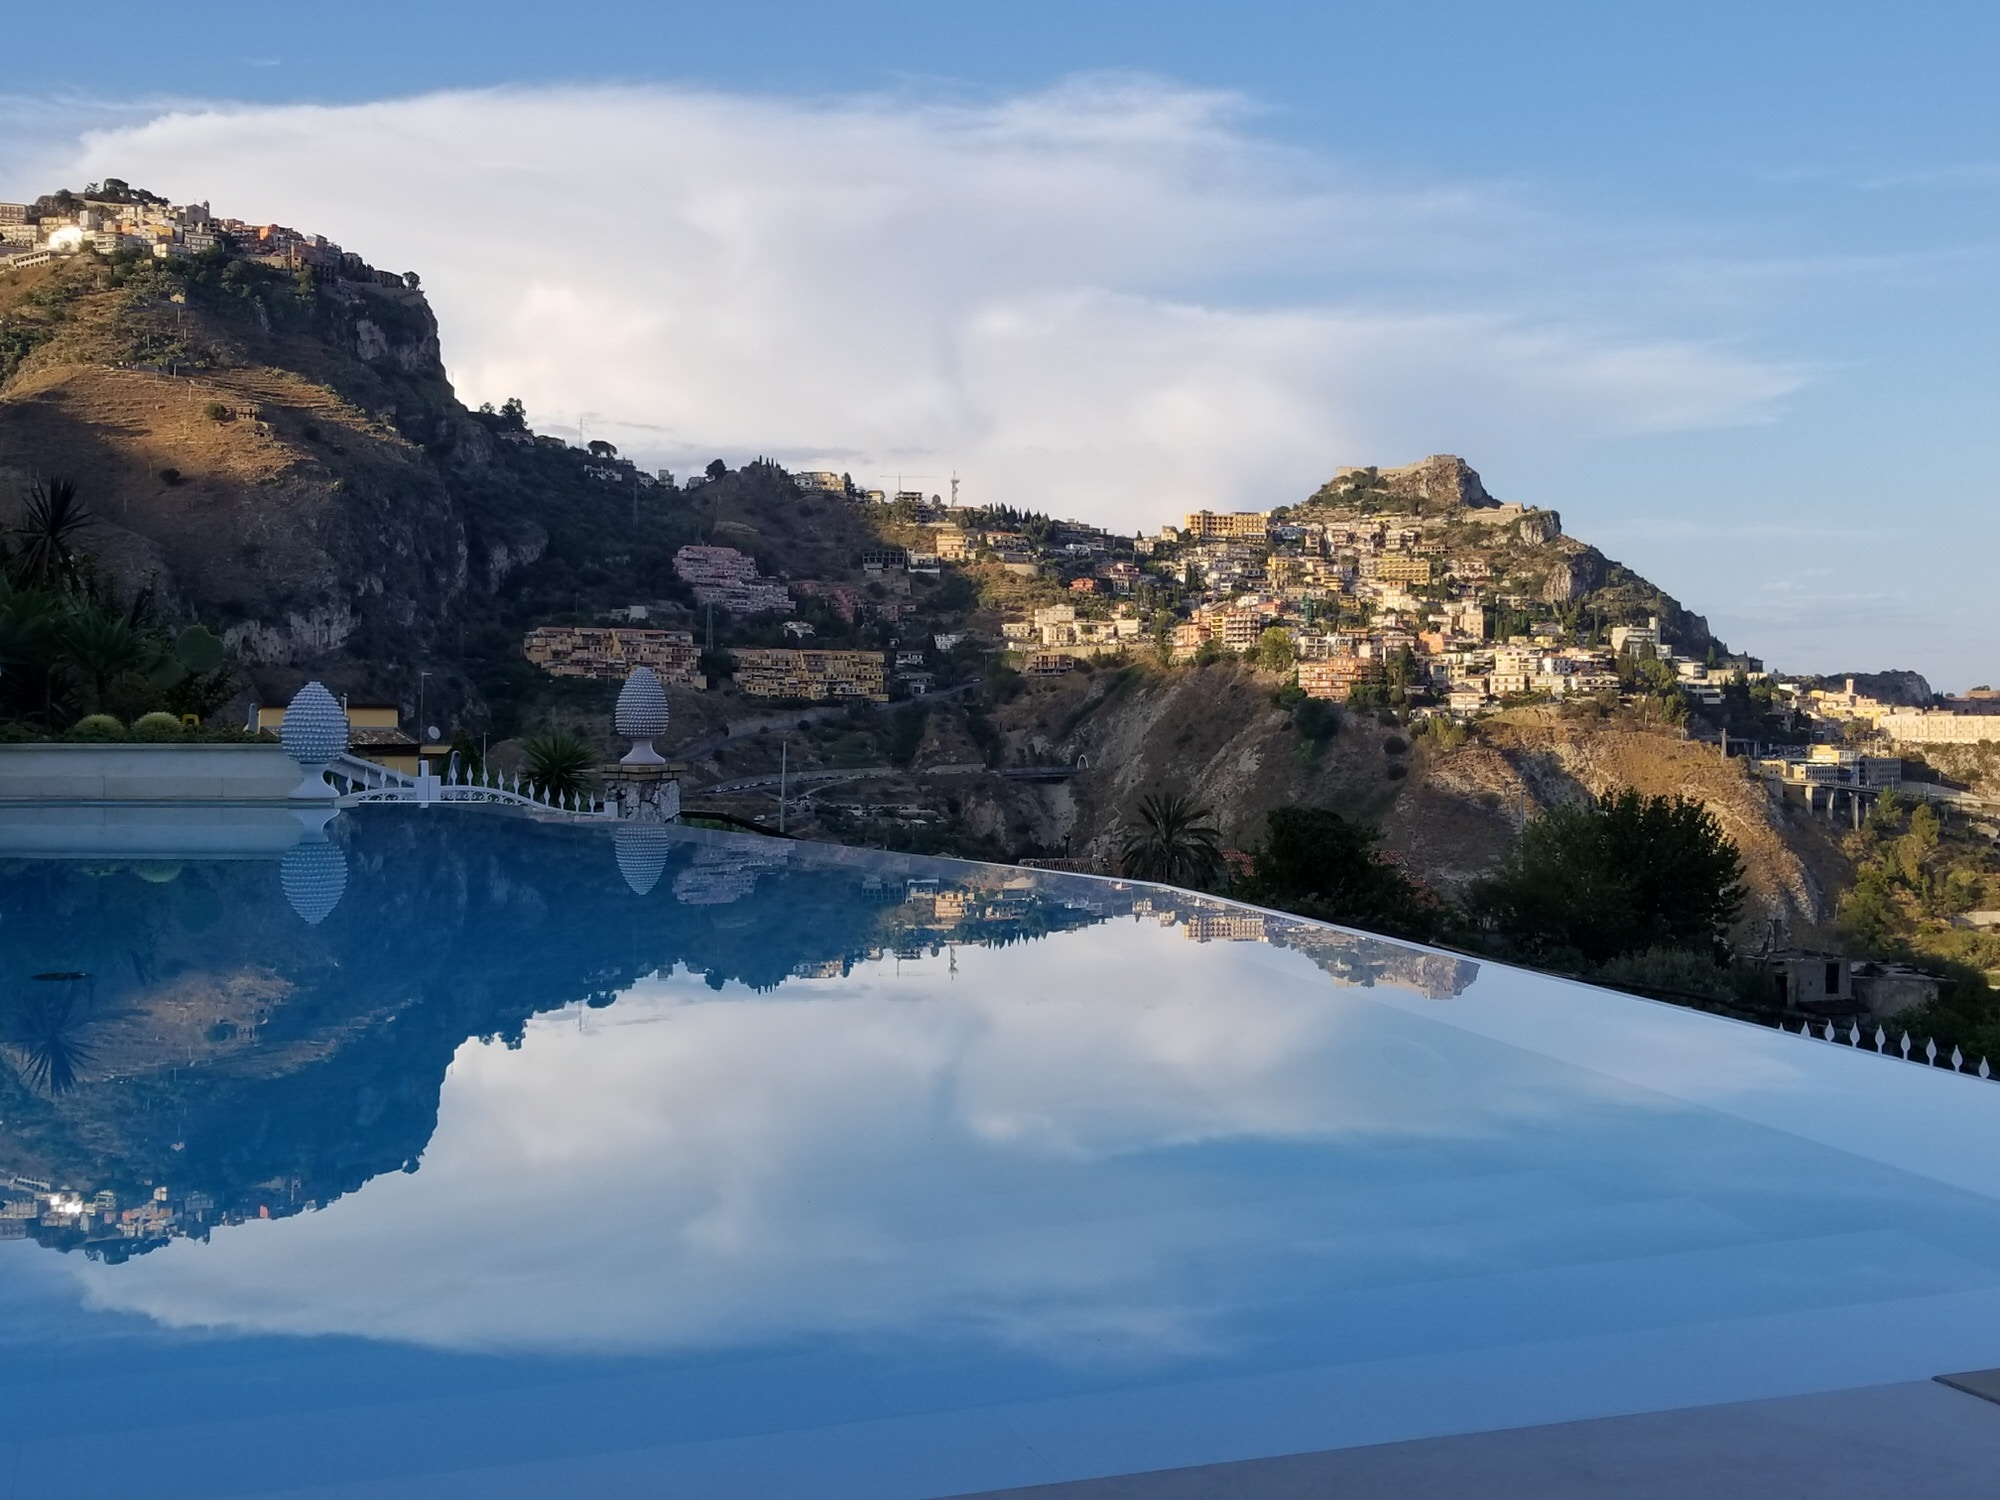 Dreamy hotel views in Taormina © Brian Maxey